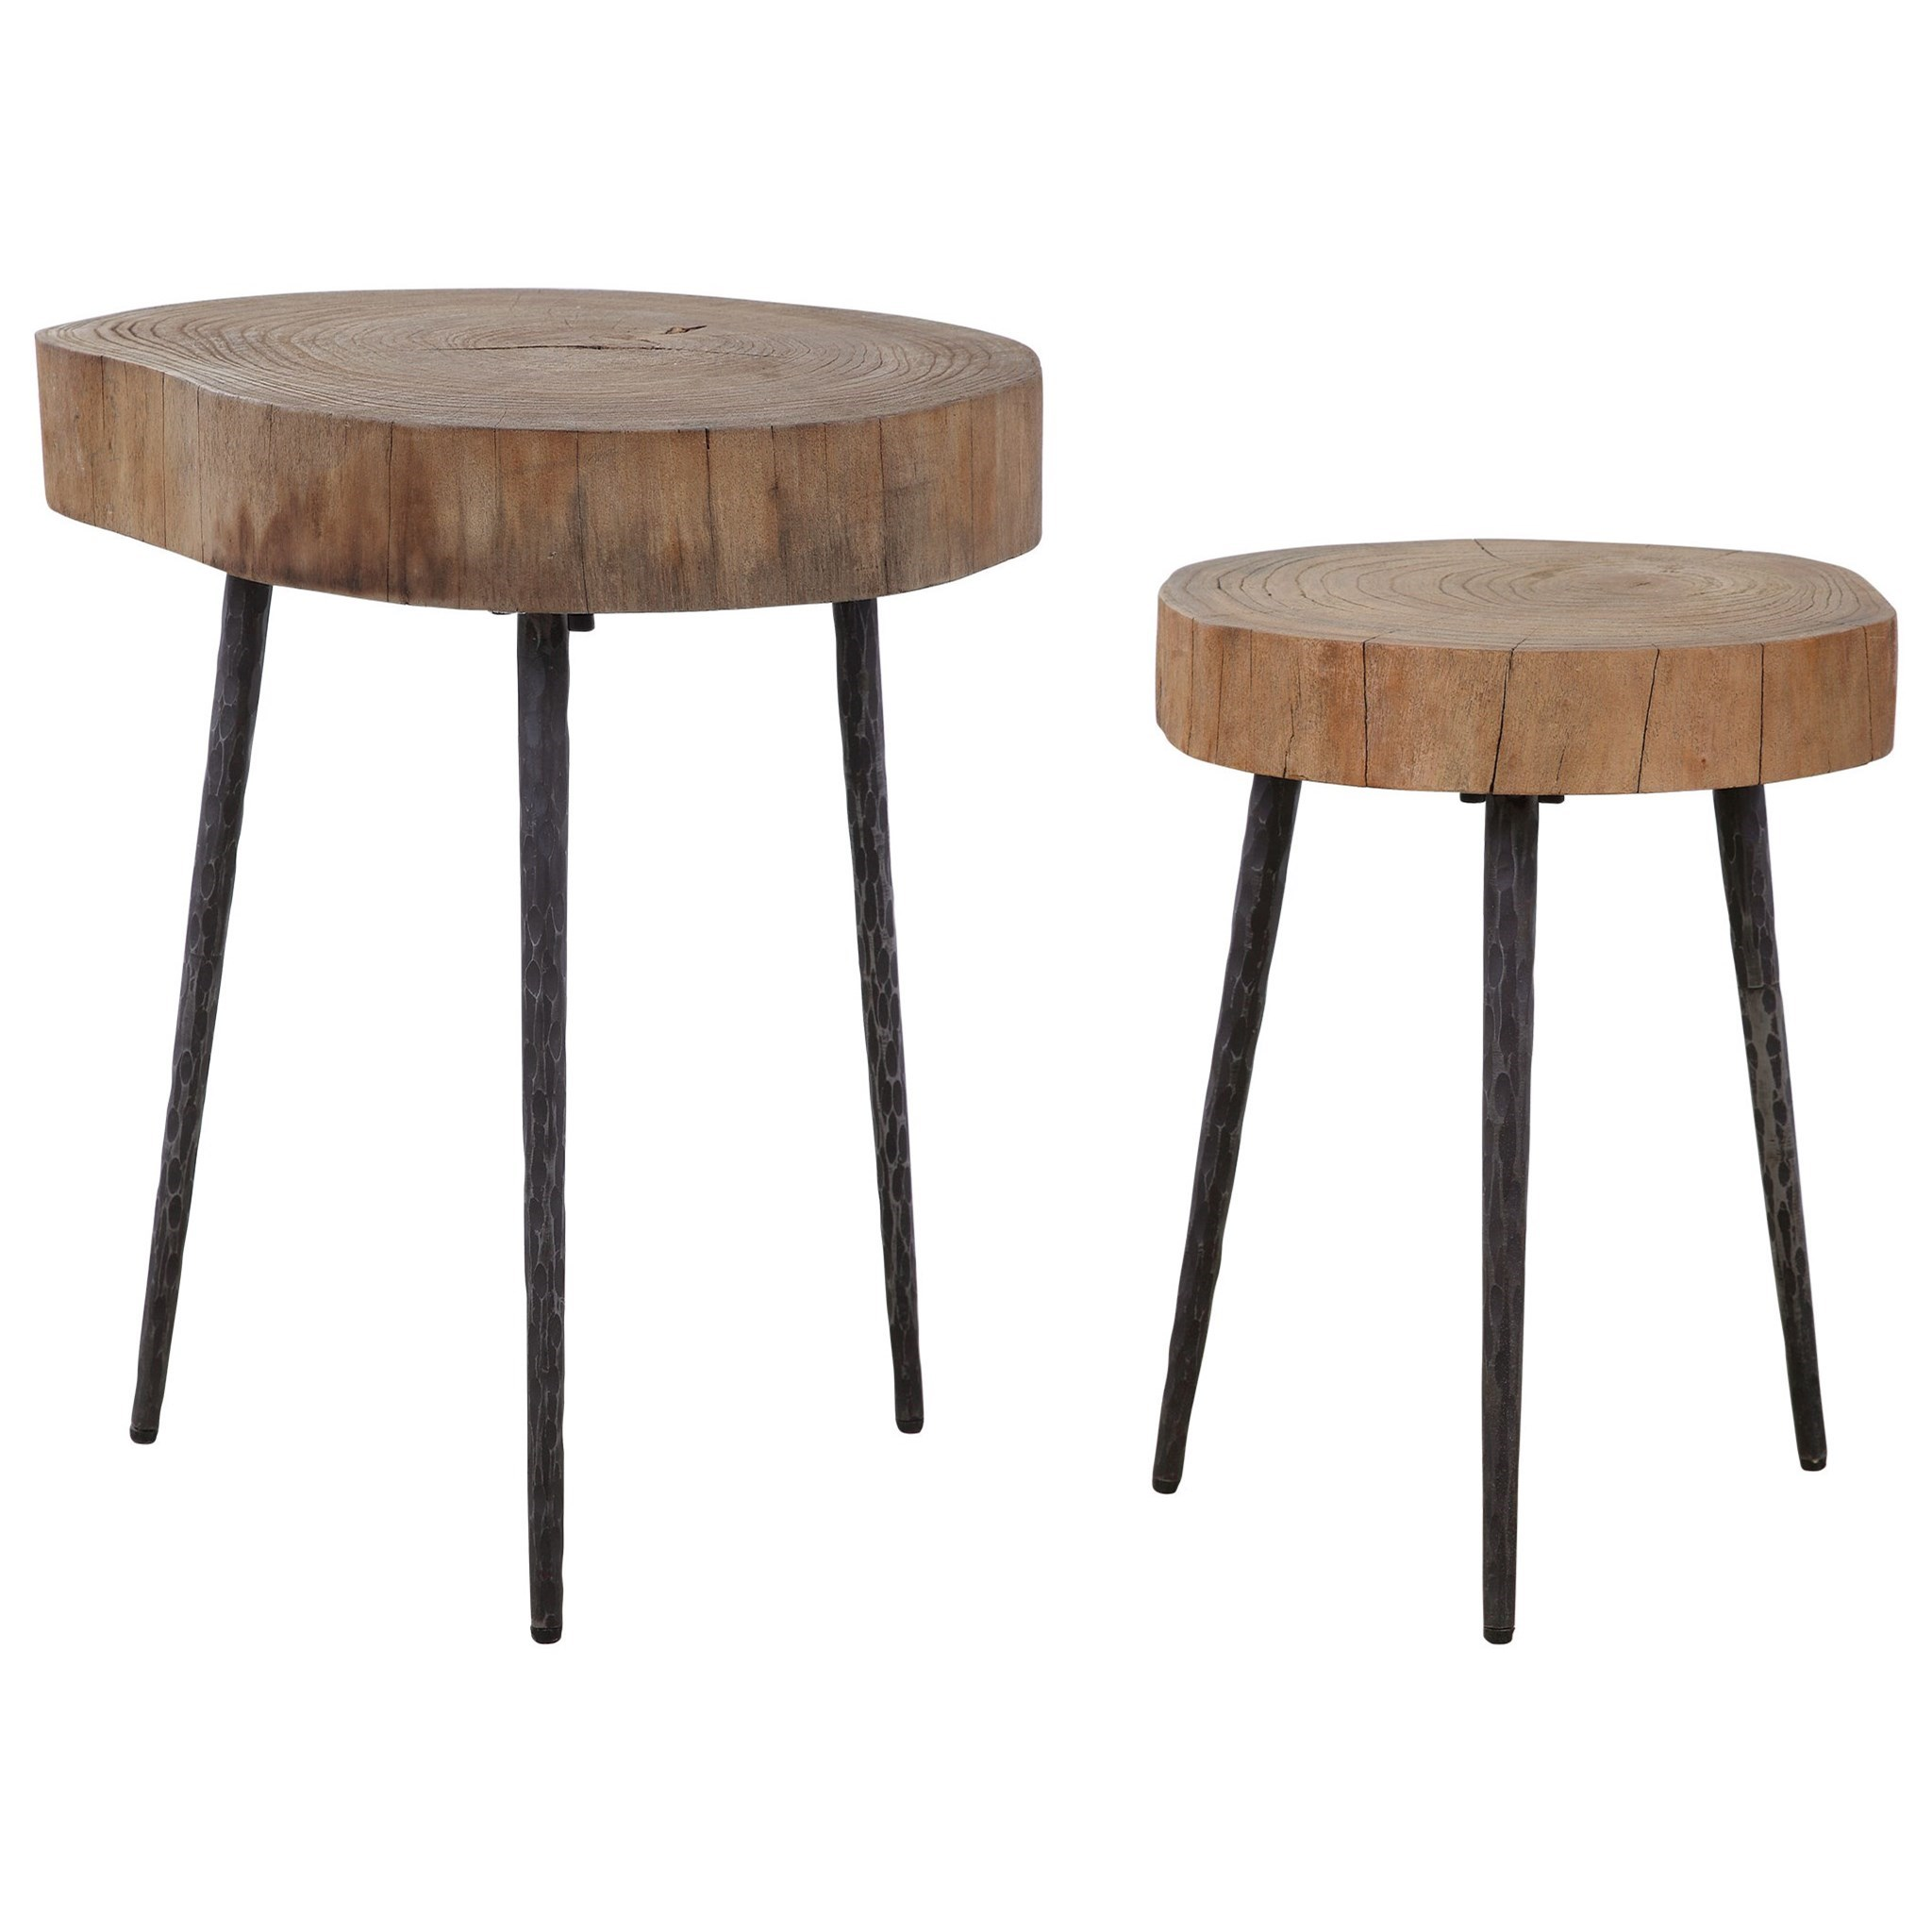 Accent Furniture - Occasional Tables Samba Wood Nesting Tables S/2 by Uttermost at Factory Direct Furniture